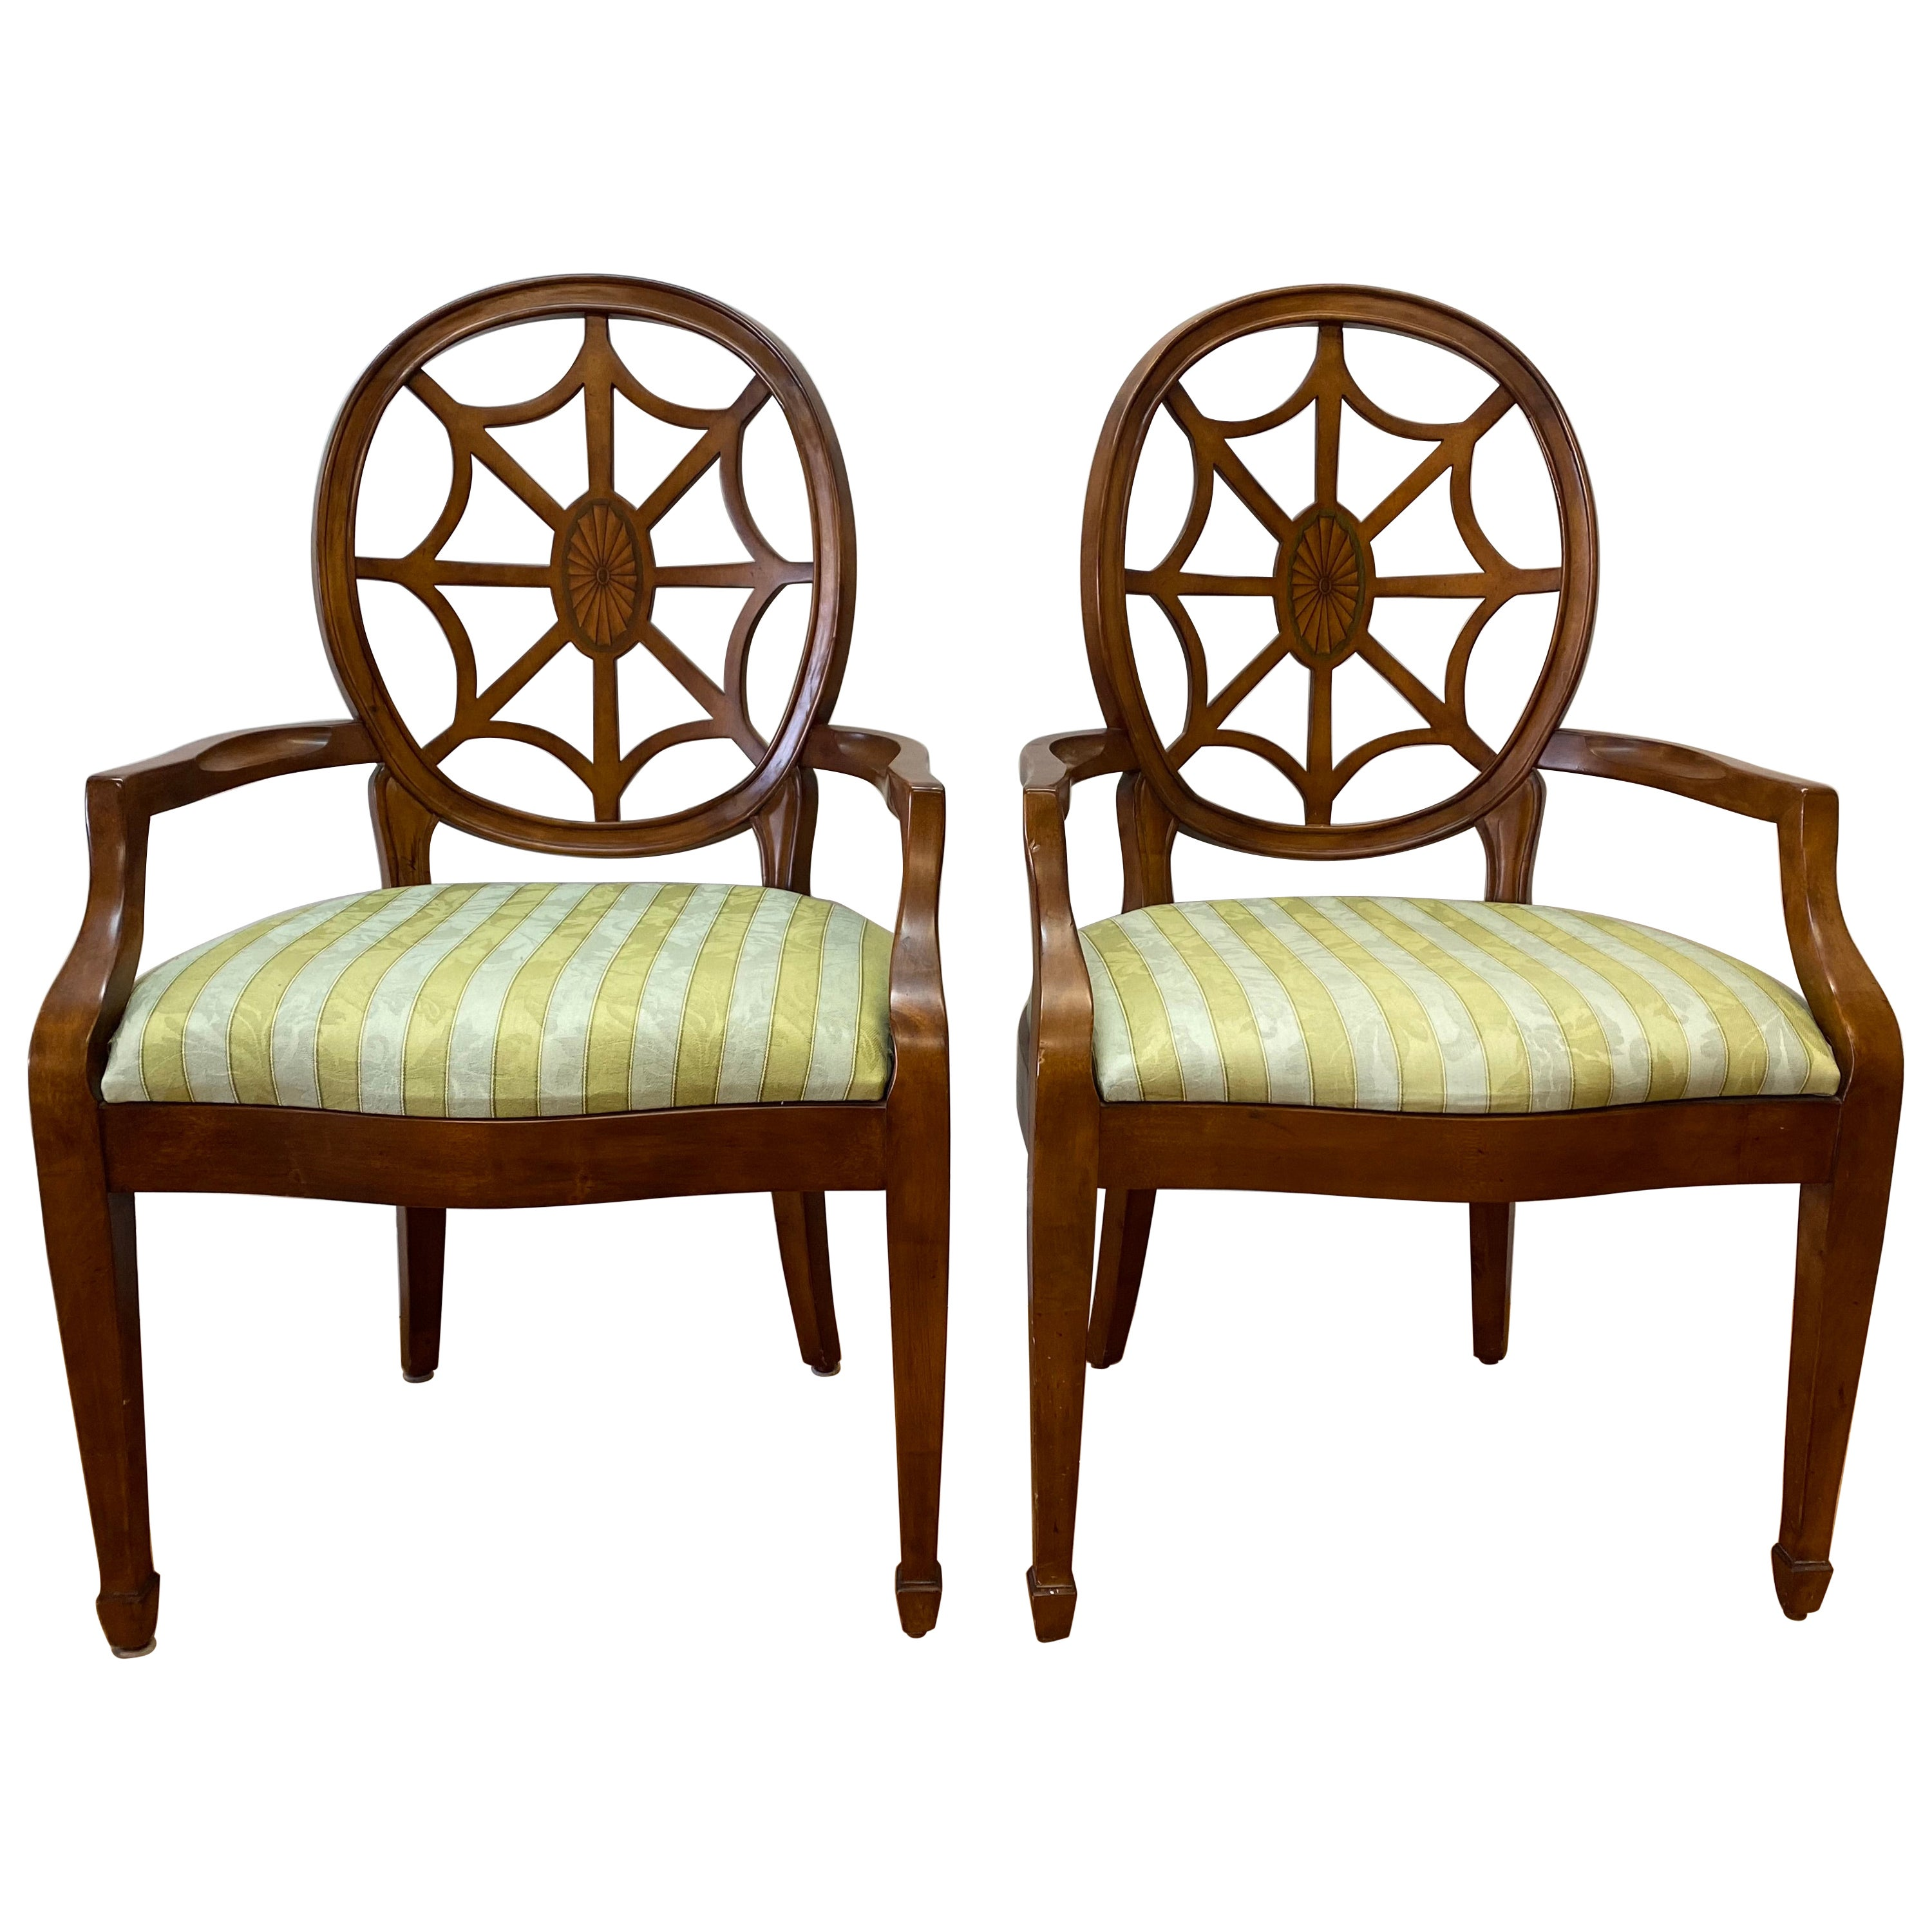 Pair of Contemporary Walnut Framed Upholstered Armchairs with Inlay